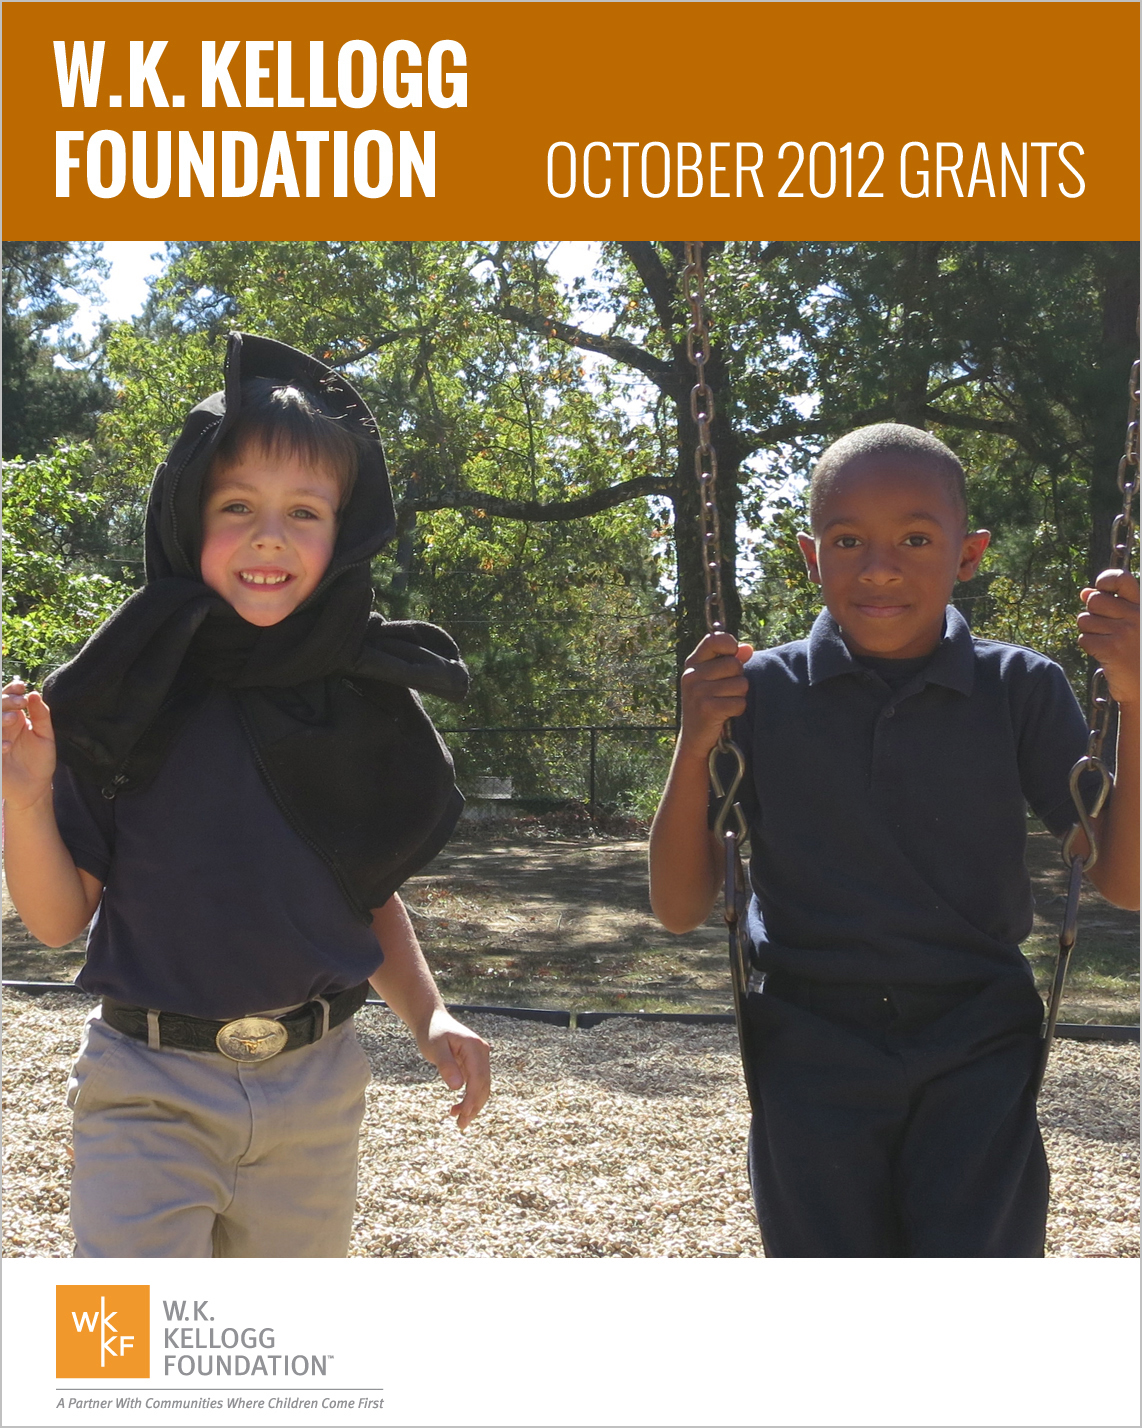 W.K. Kellogg Foundation Grants - October 2012